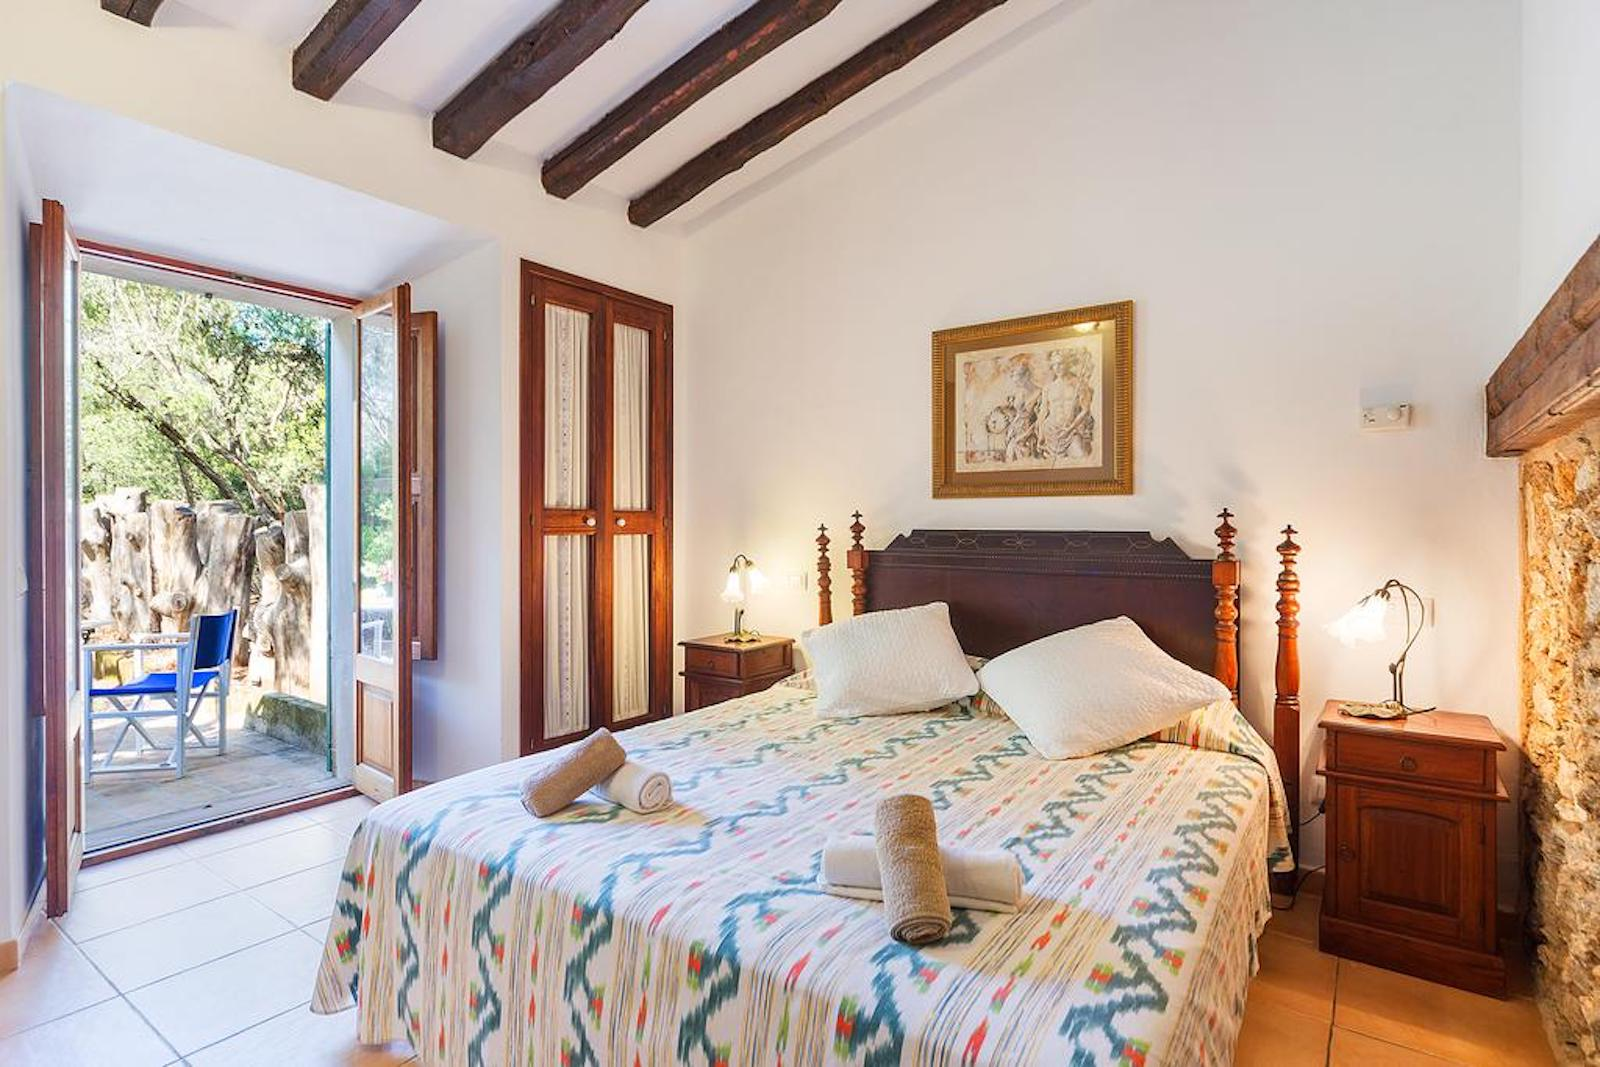 ISLA-Travel-Finca-Hotel-Mallorca-Double-Room